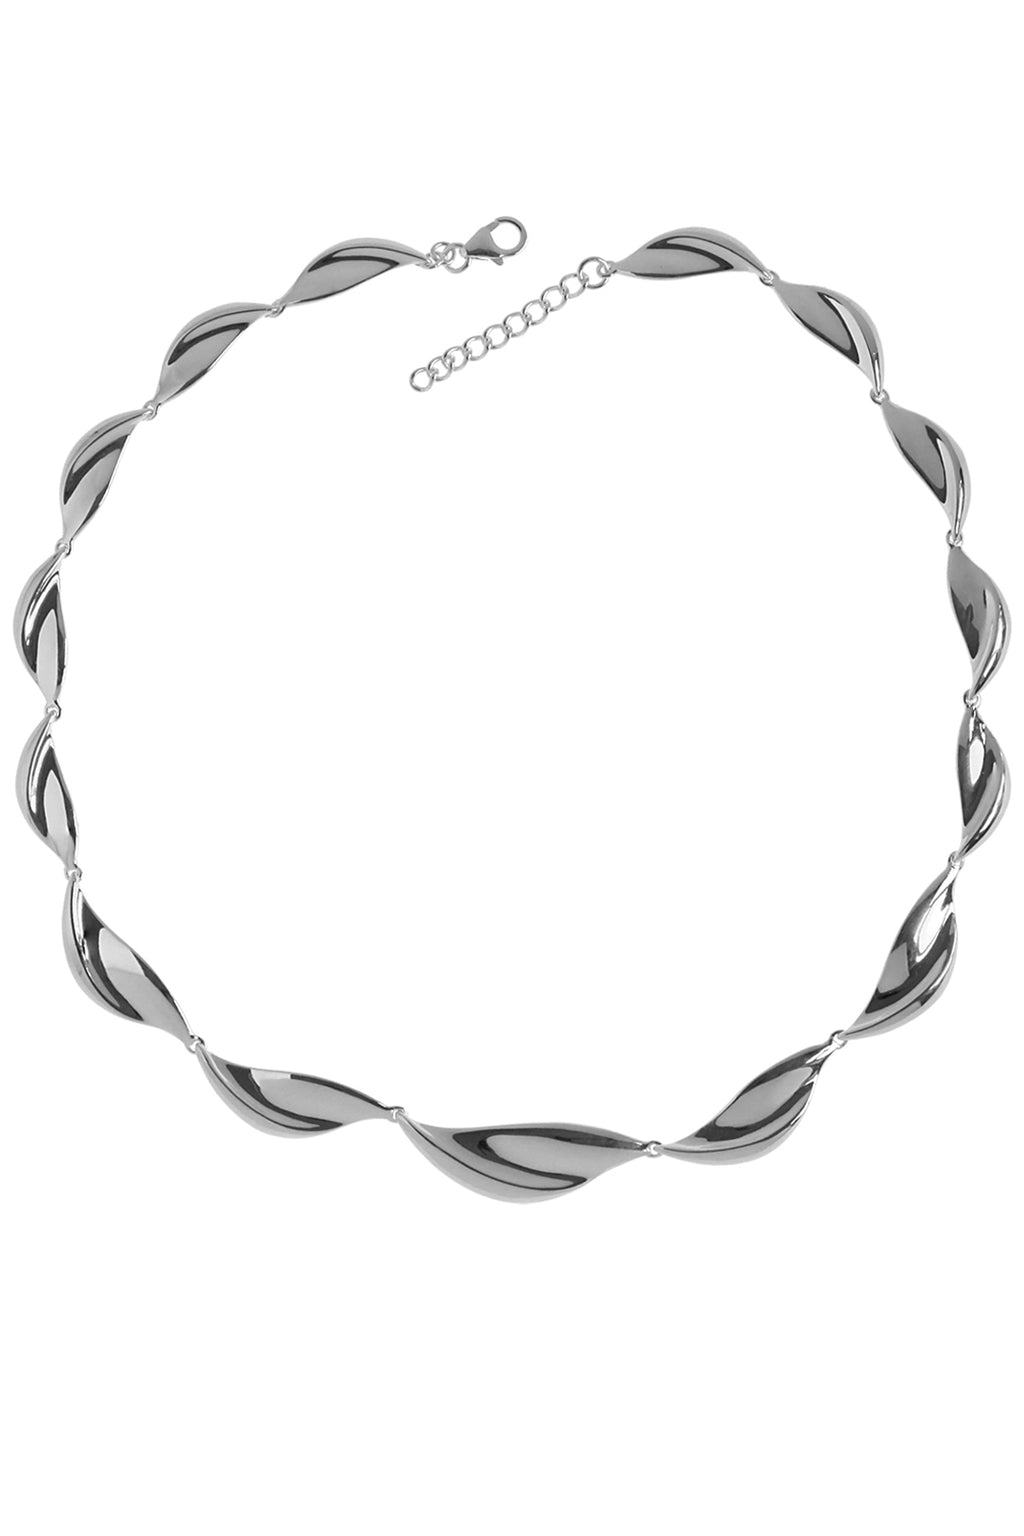 Silver twist necklet / Nina B Jewellery